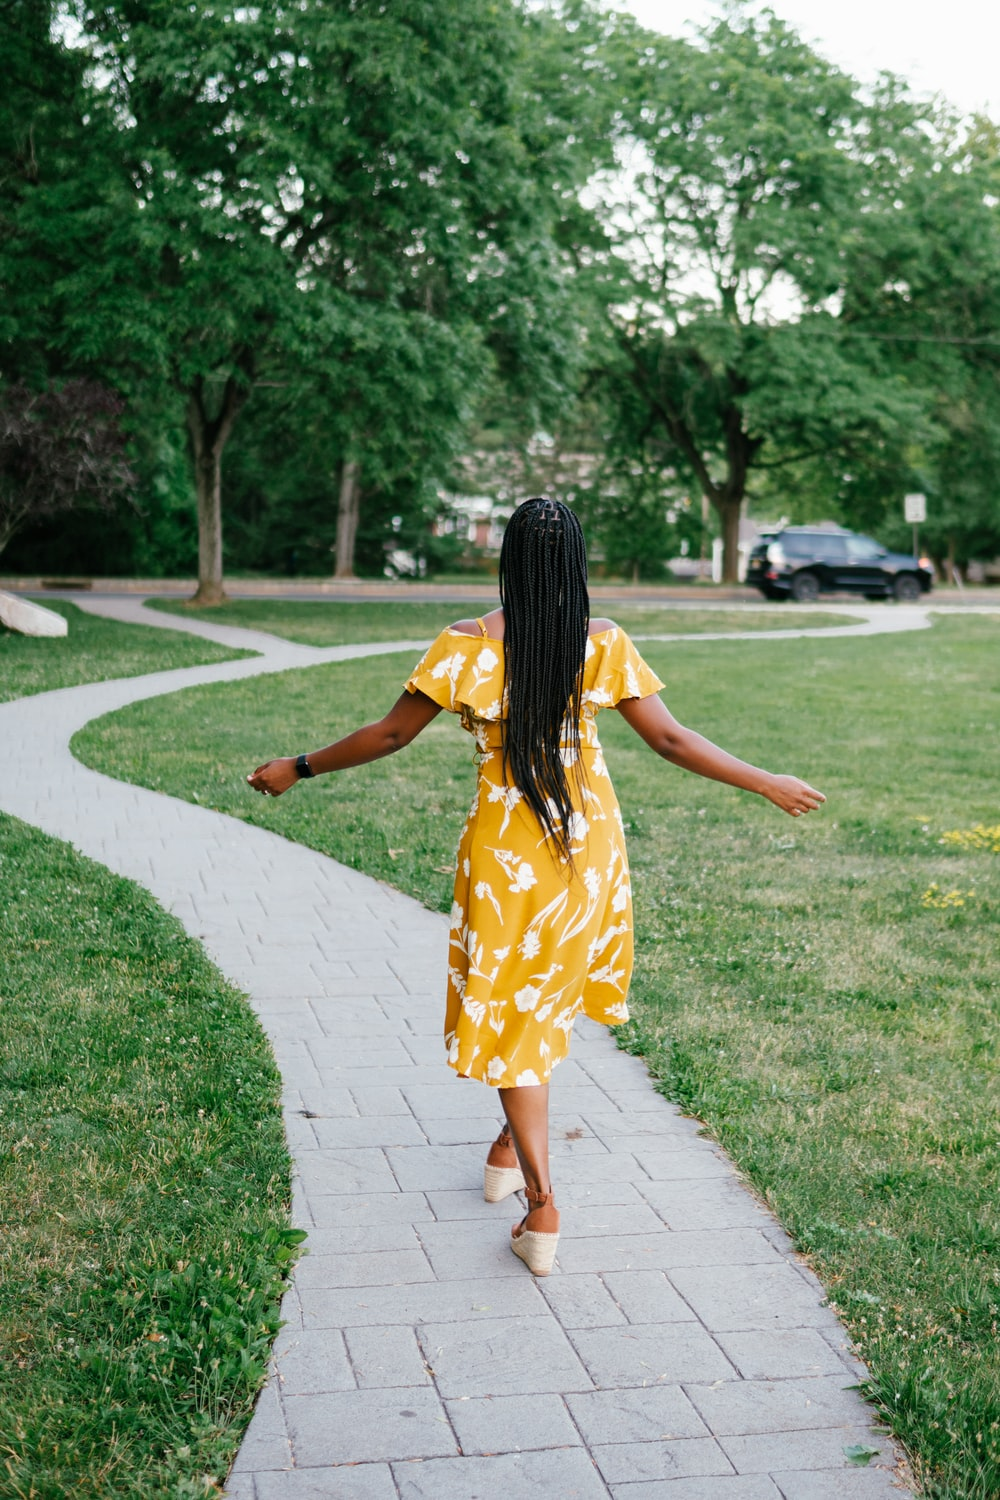 woman in yellow and white floral dress walking on pathway during daytime